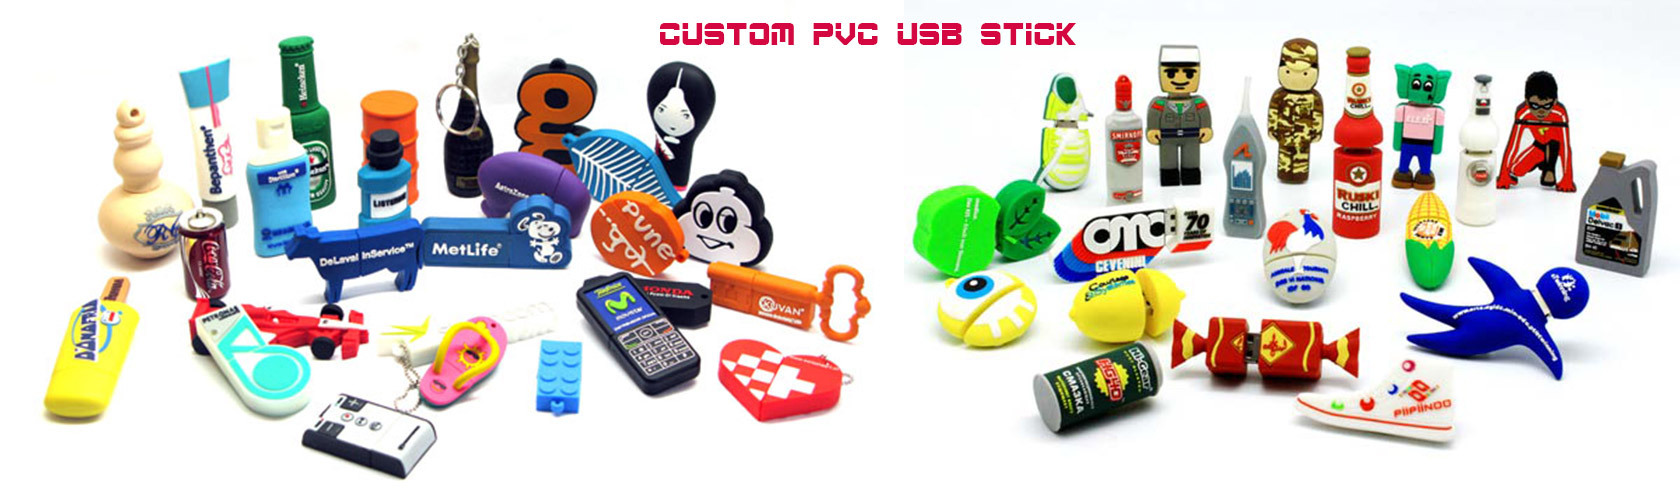 Get creative with a custom shaped rubber USB flash drive